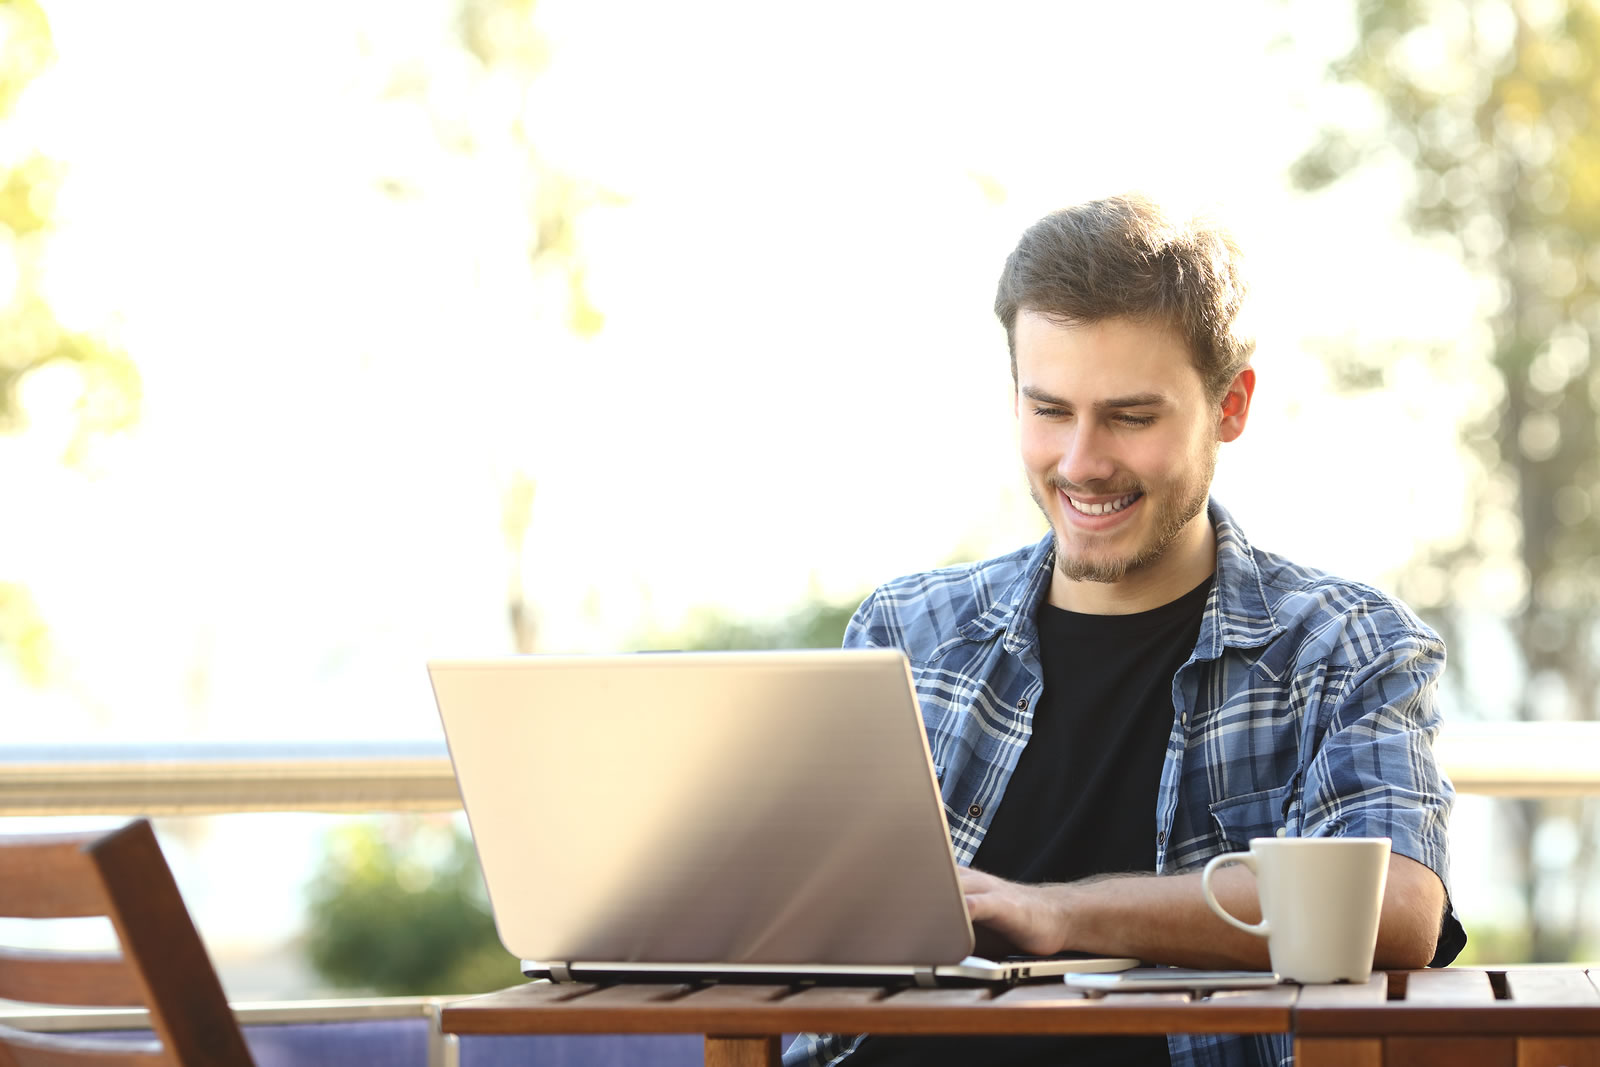 Smiling man at table working on laptop